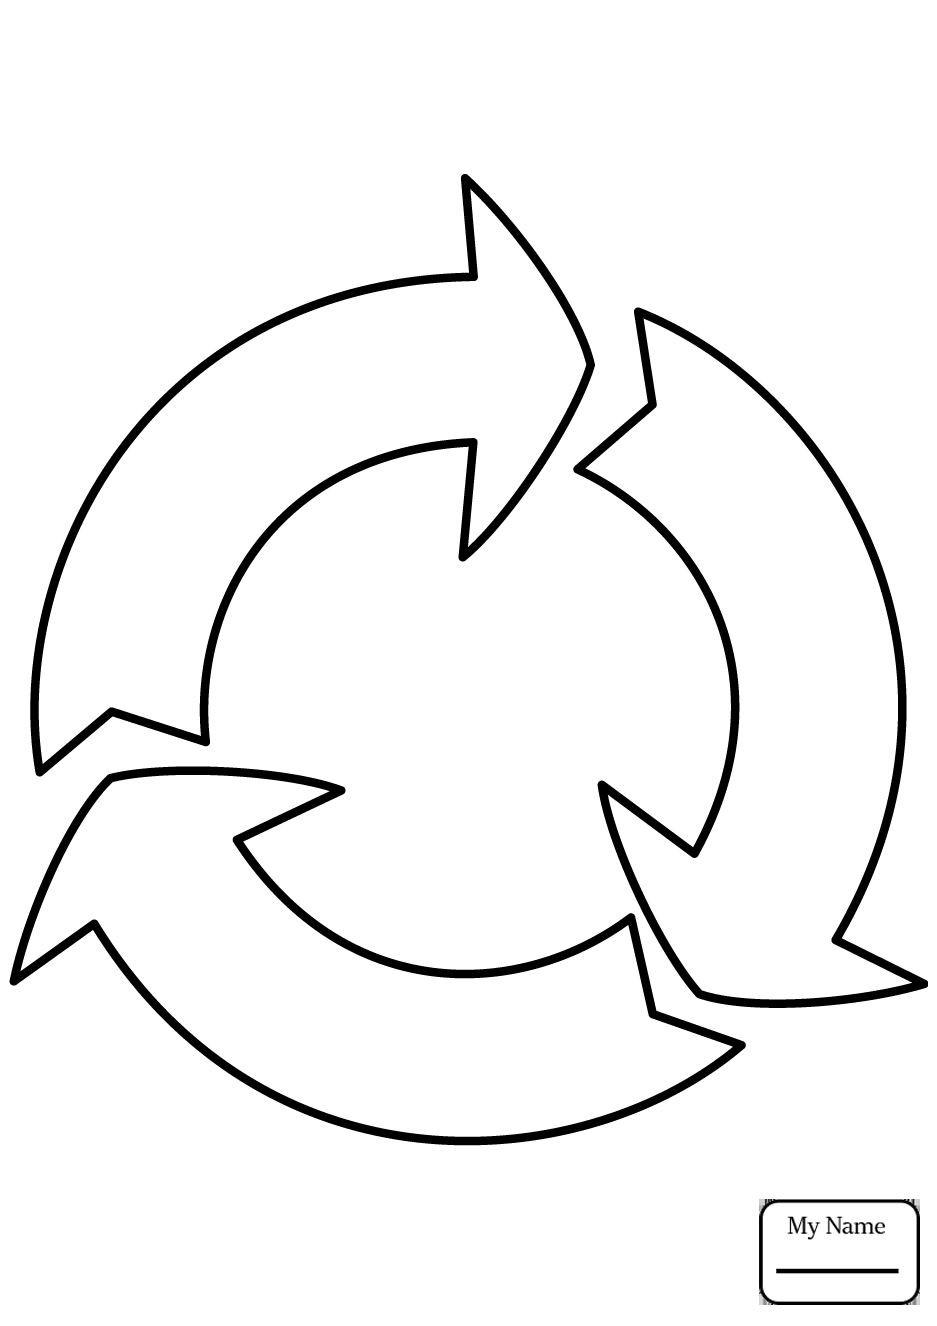 Recycle Bin Drawing at GetDrawings.com | Free for personal use ...